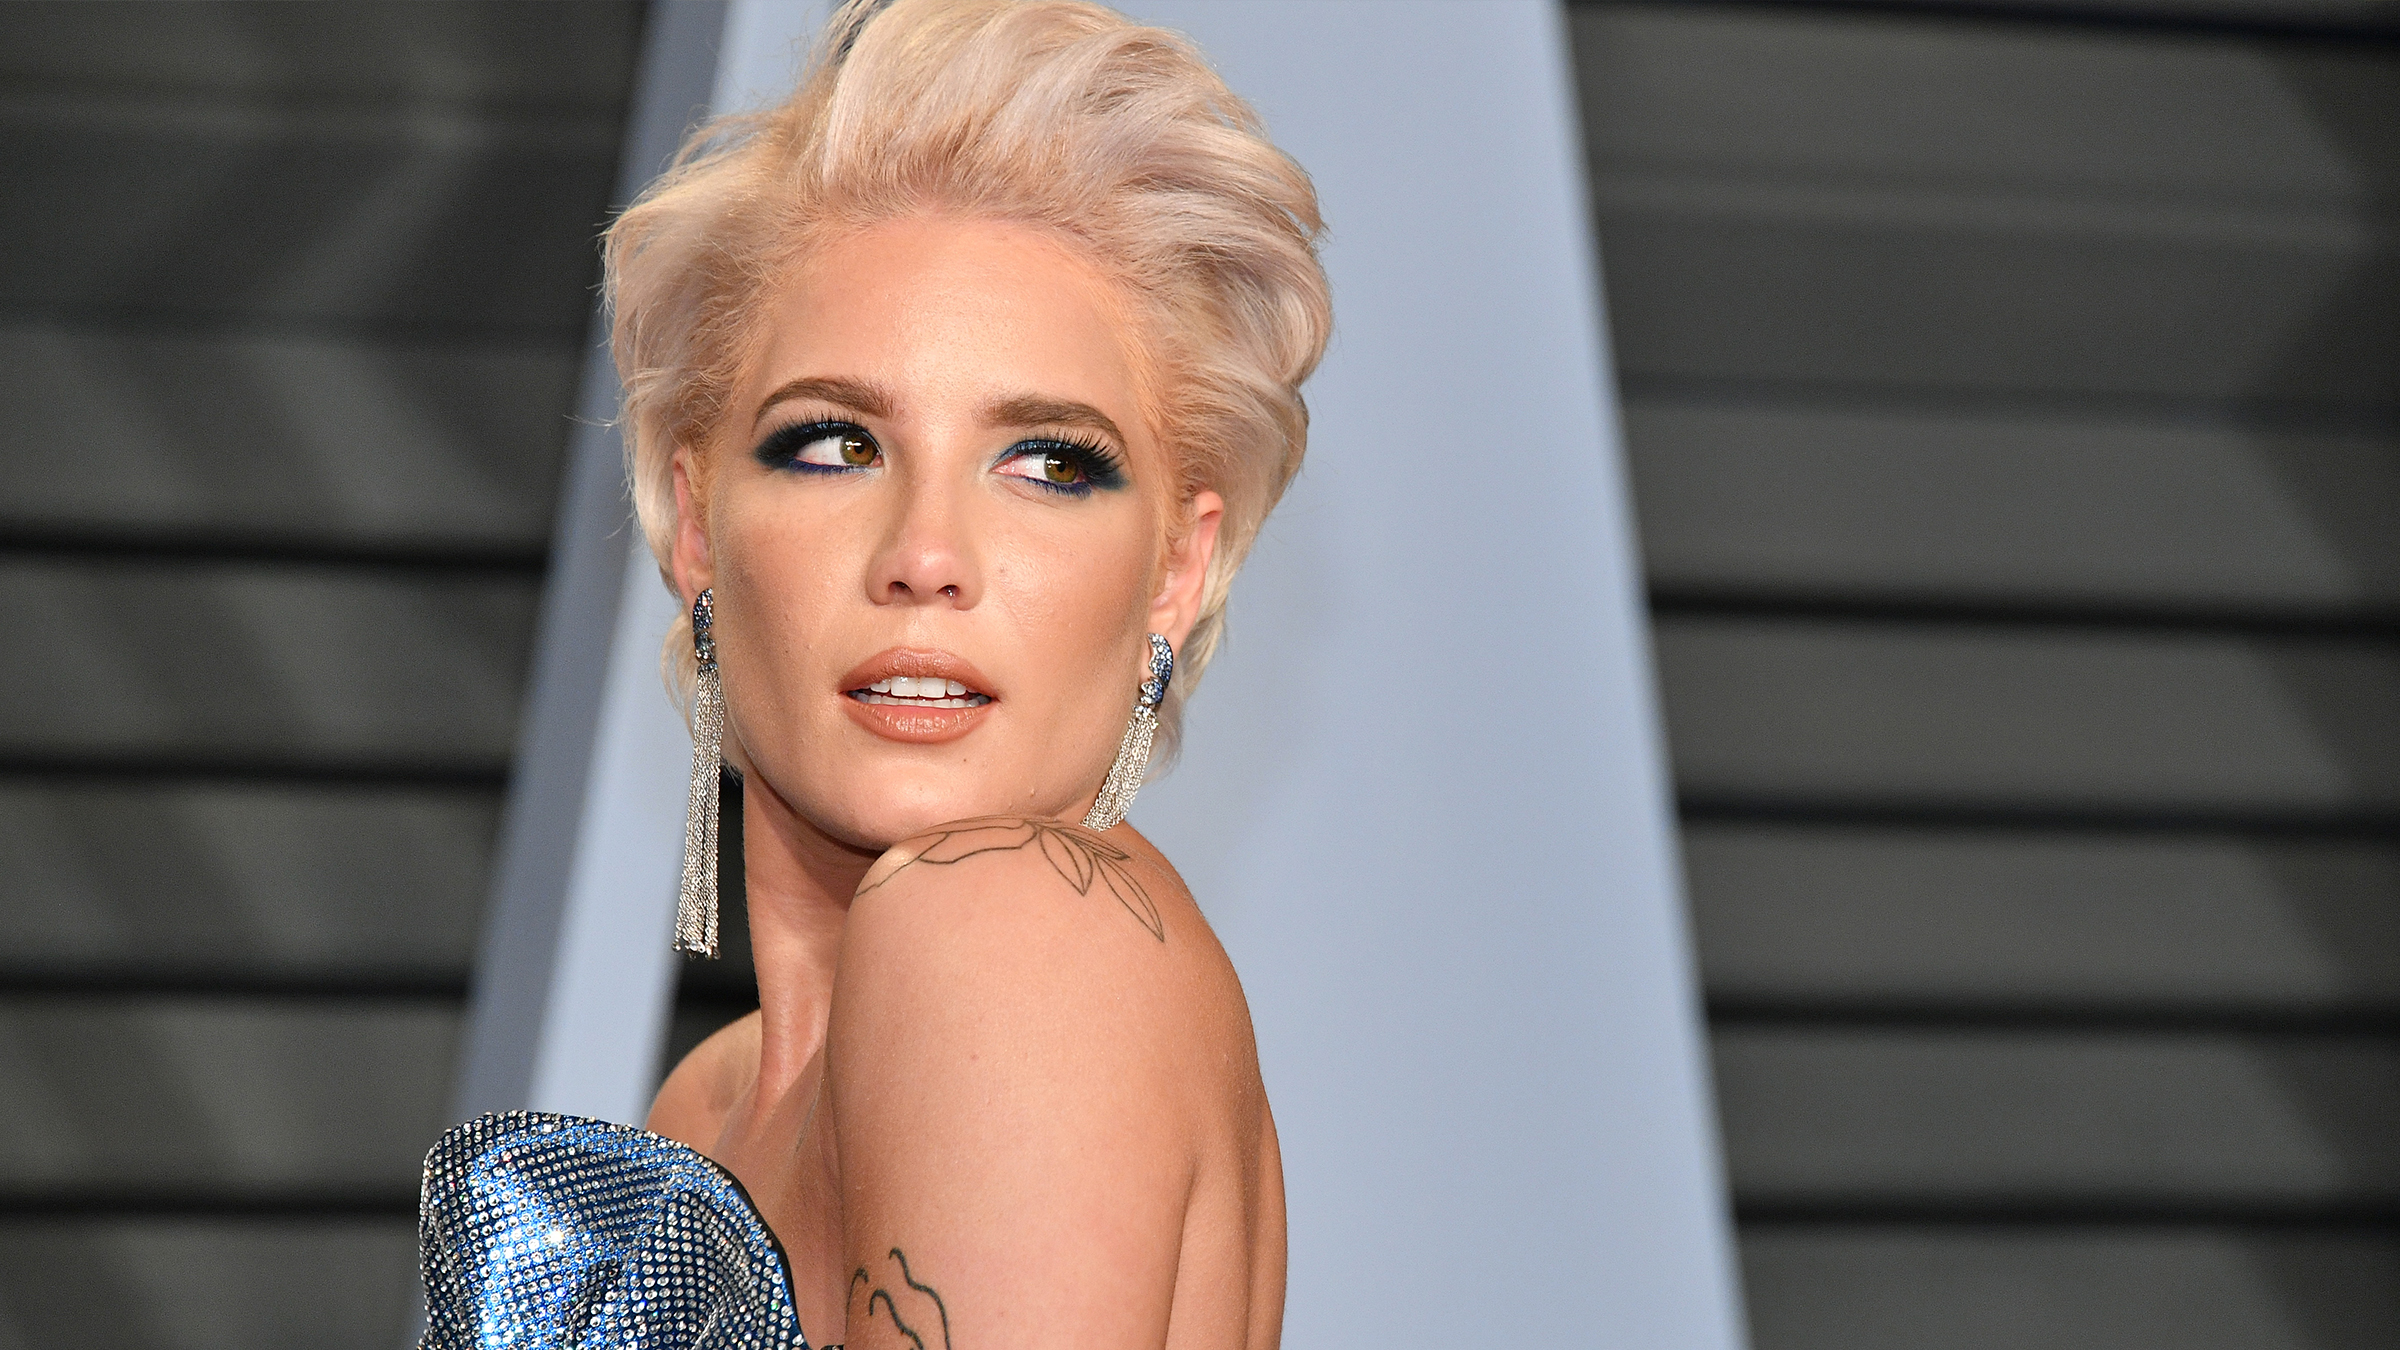 Halsey attends the 2018 Vanity Fair Oscar Party hosted by Radhika Jones at Wallis Annenberg Center for the Performing Arts on March 4, 2018 in Beverly Hills, California. (Photo by Dia Dipasupil/Getty Images)